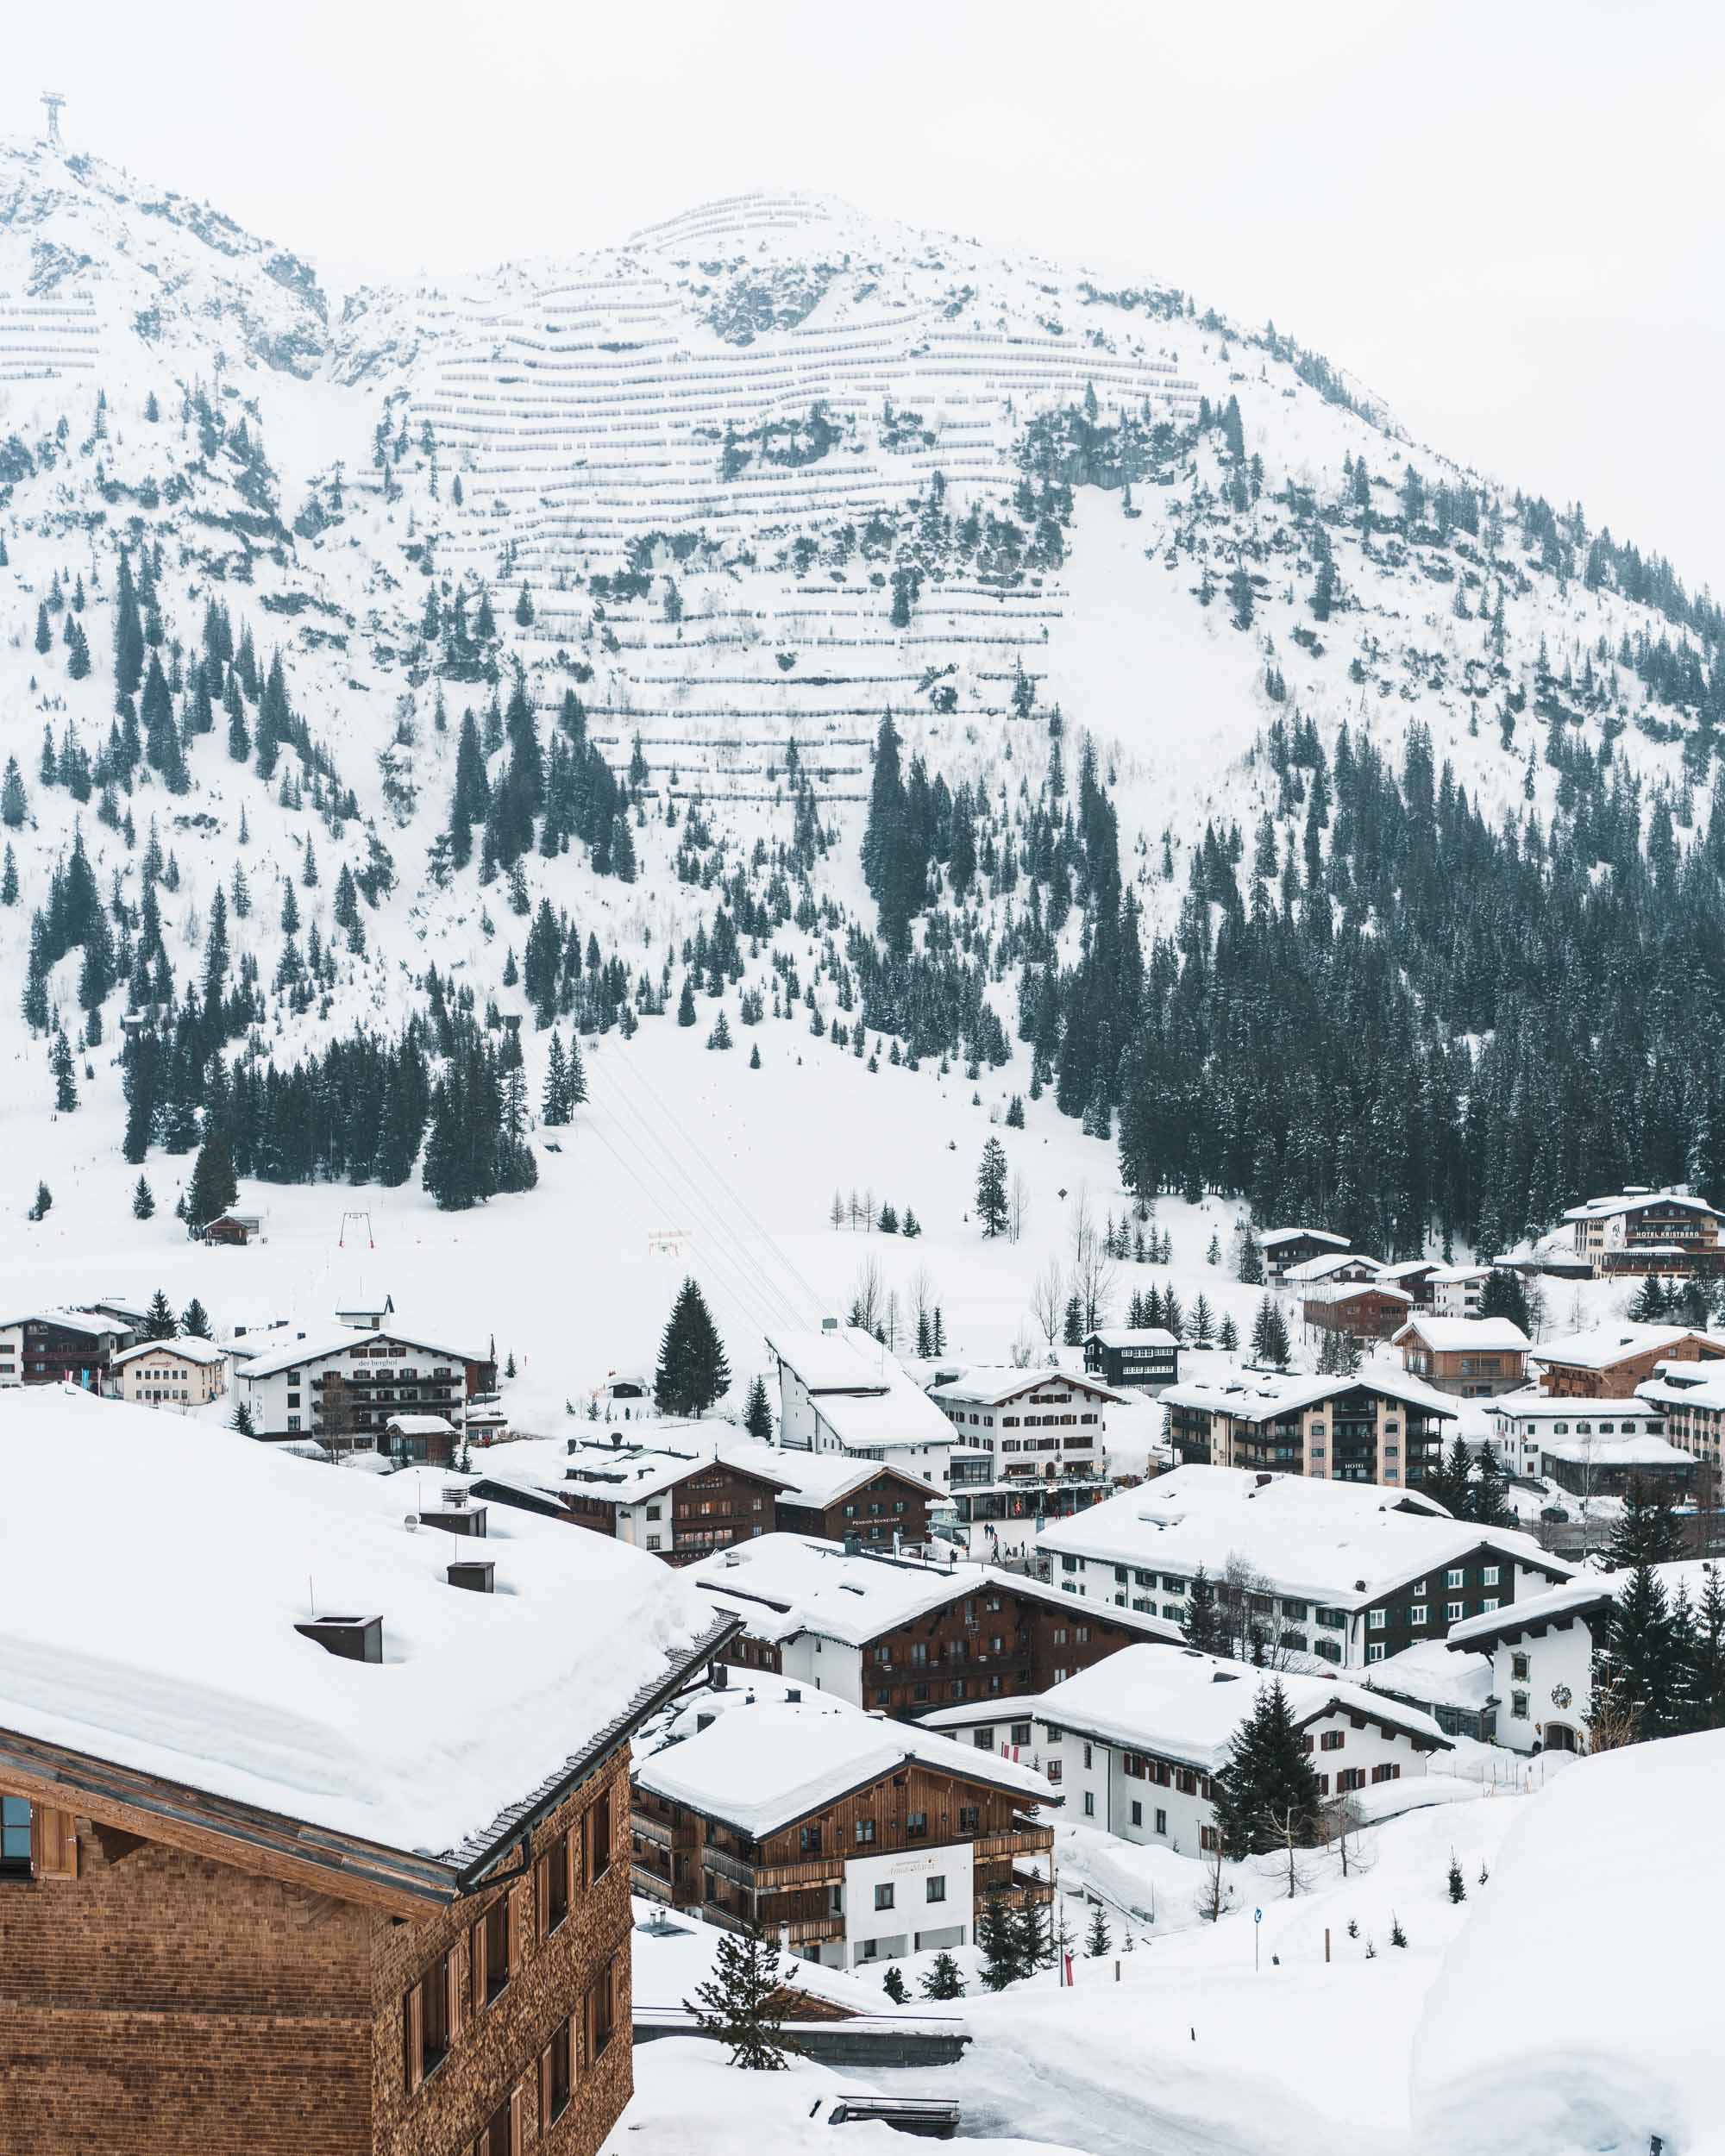 Snow-covered rooftops of hotels and restaurants downtown Lech Austria Ski Town